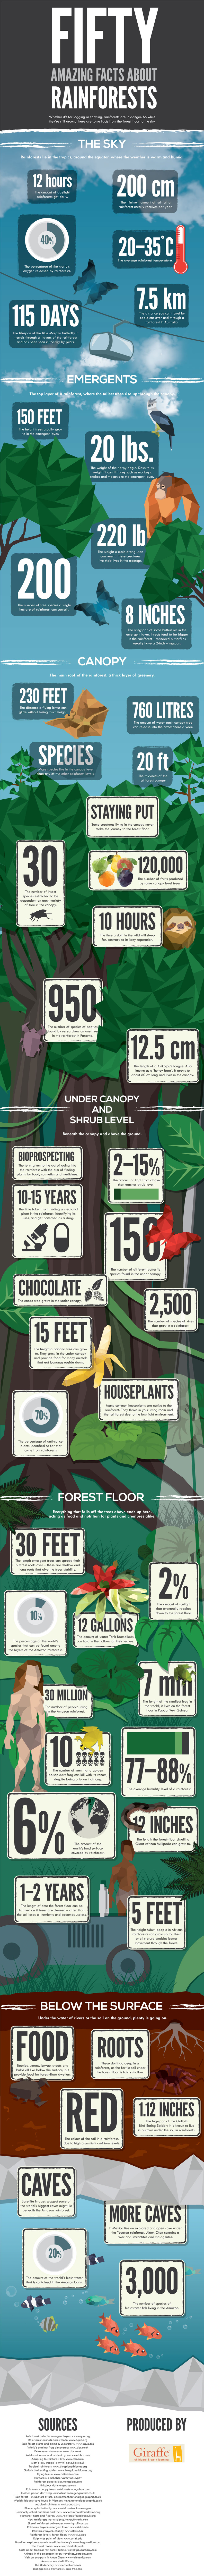 50 Amazing Facts About Rainforests